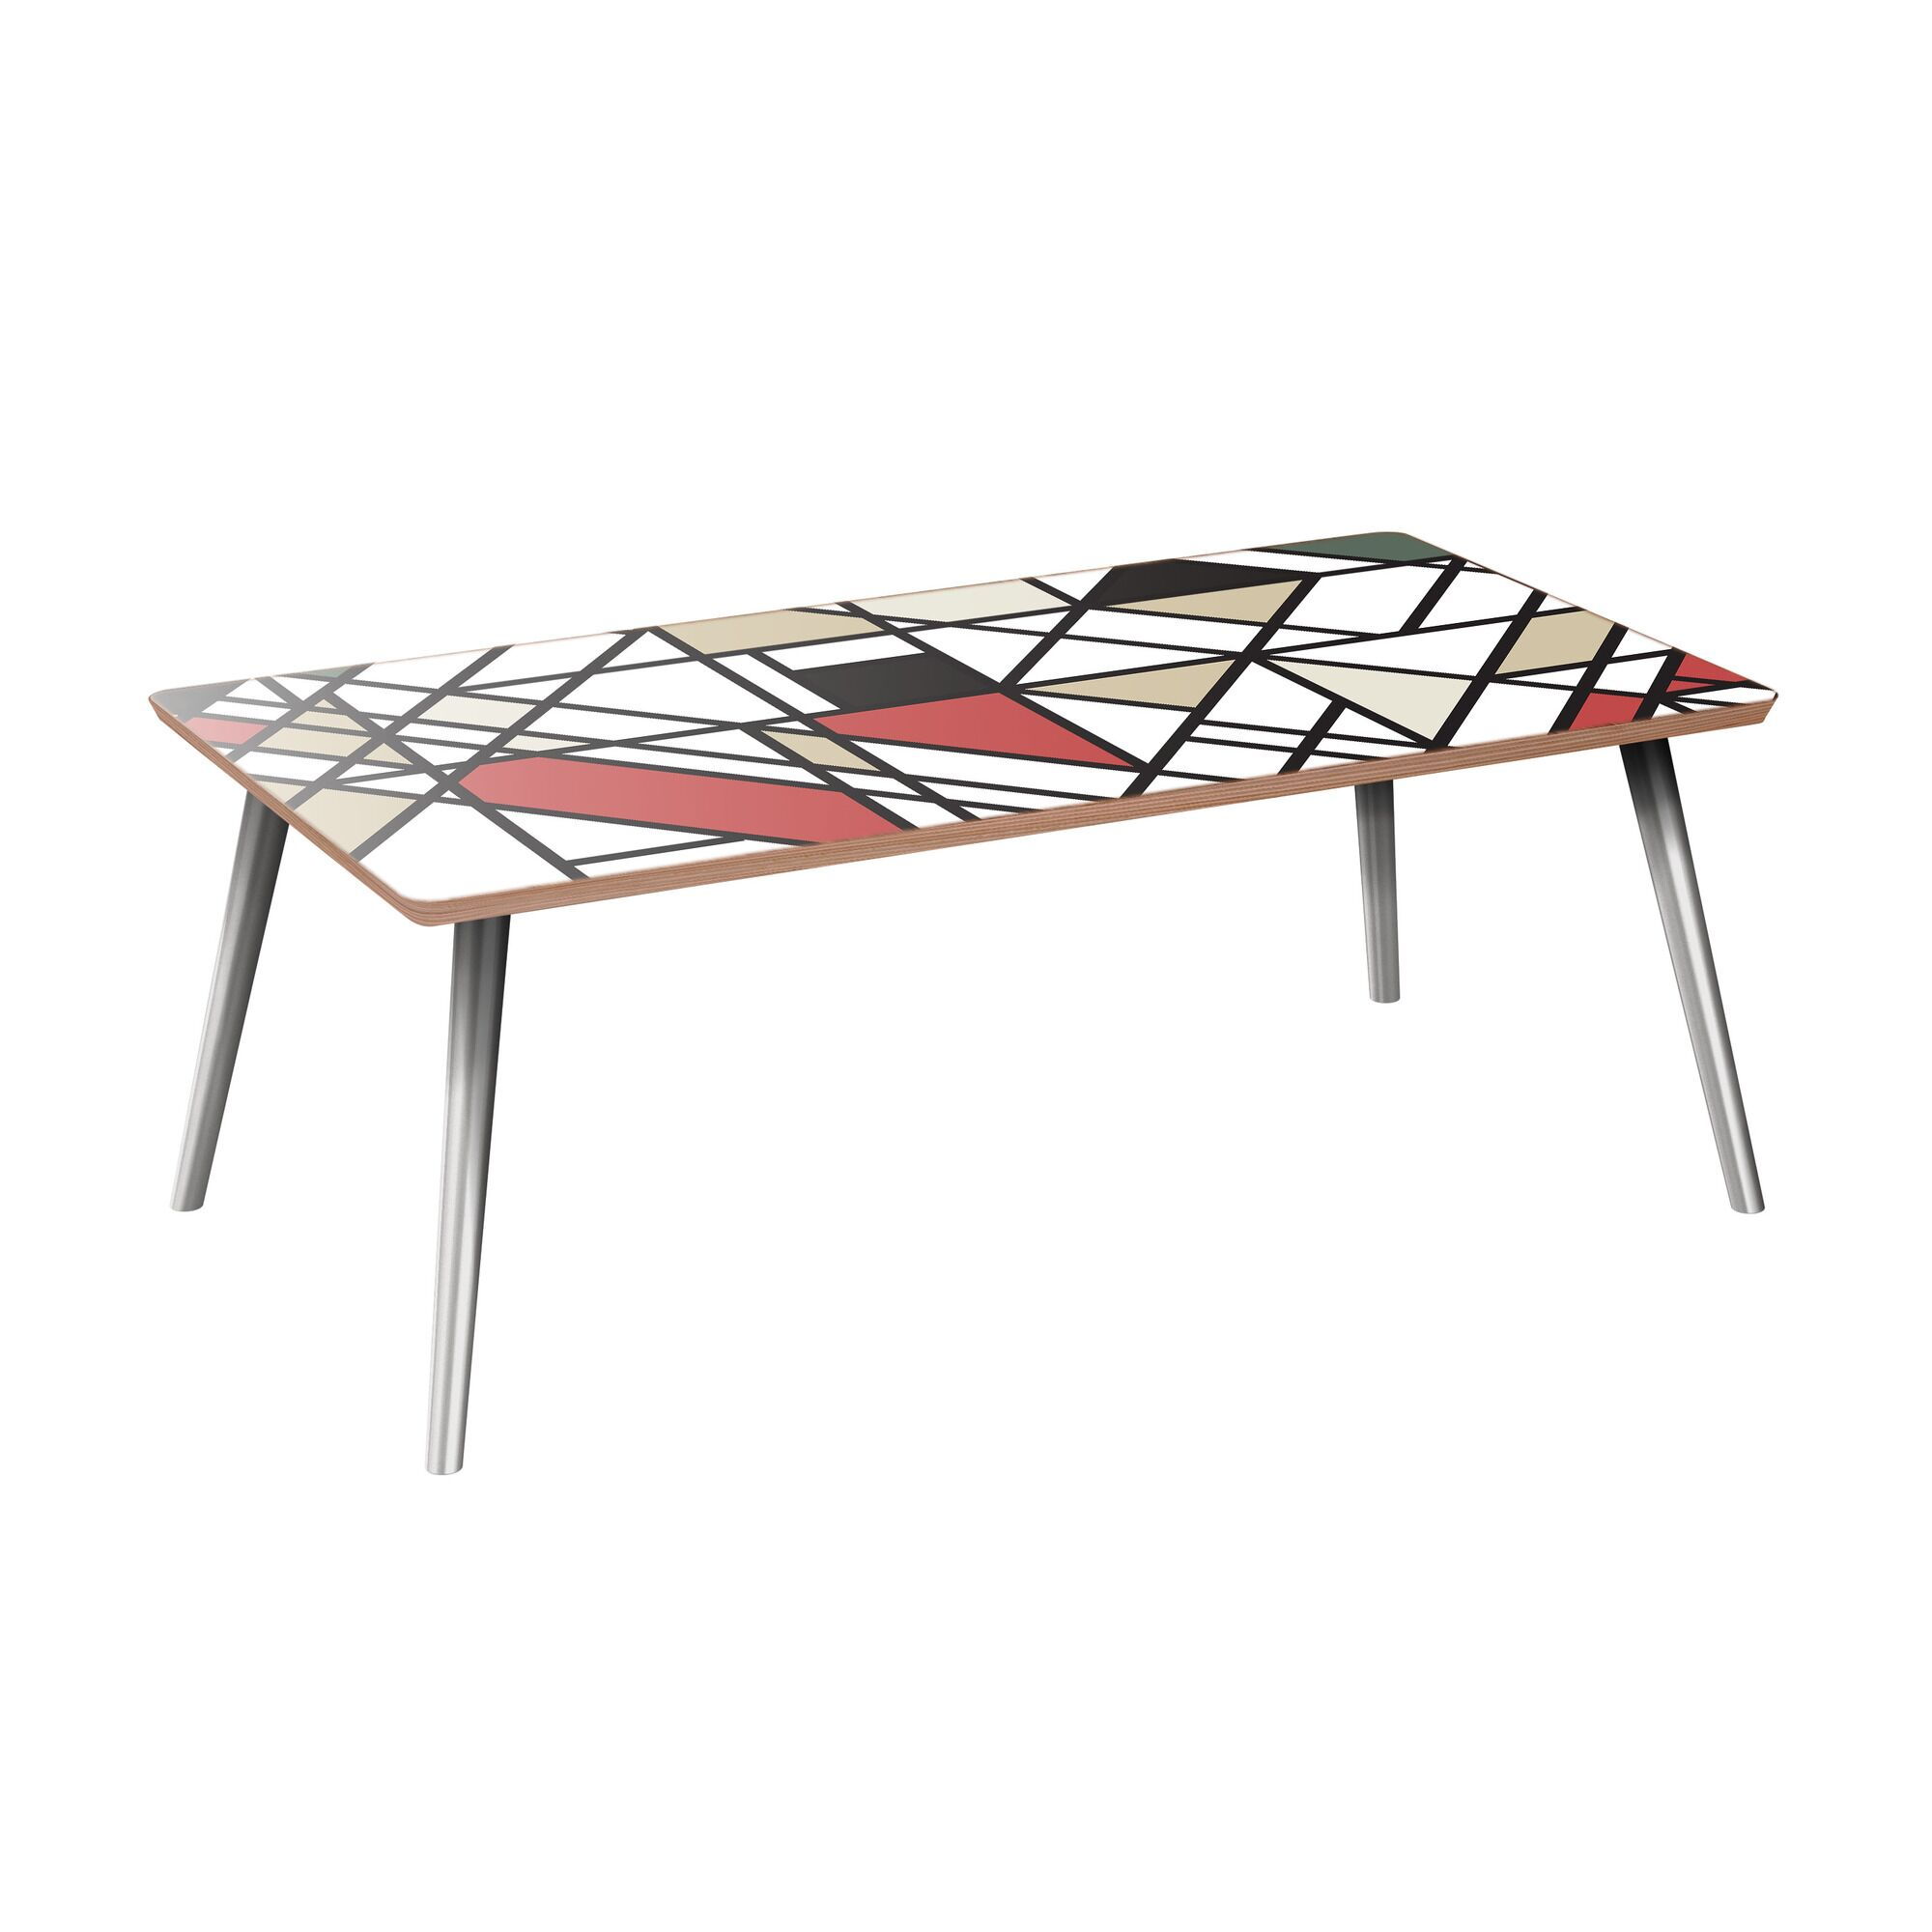 Joline Coffee Table Table Base Color: Chrome, Table Top Color: Walnut